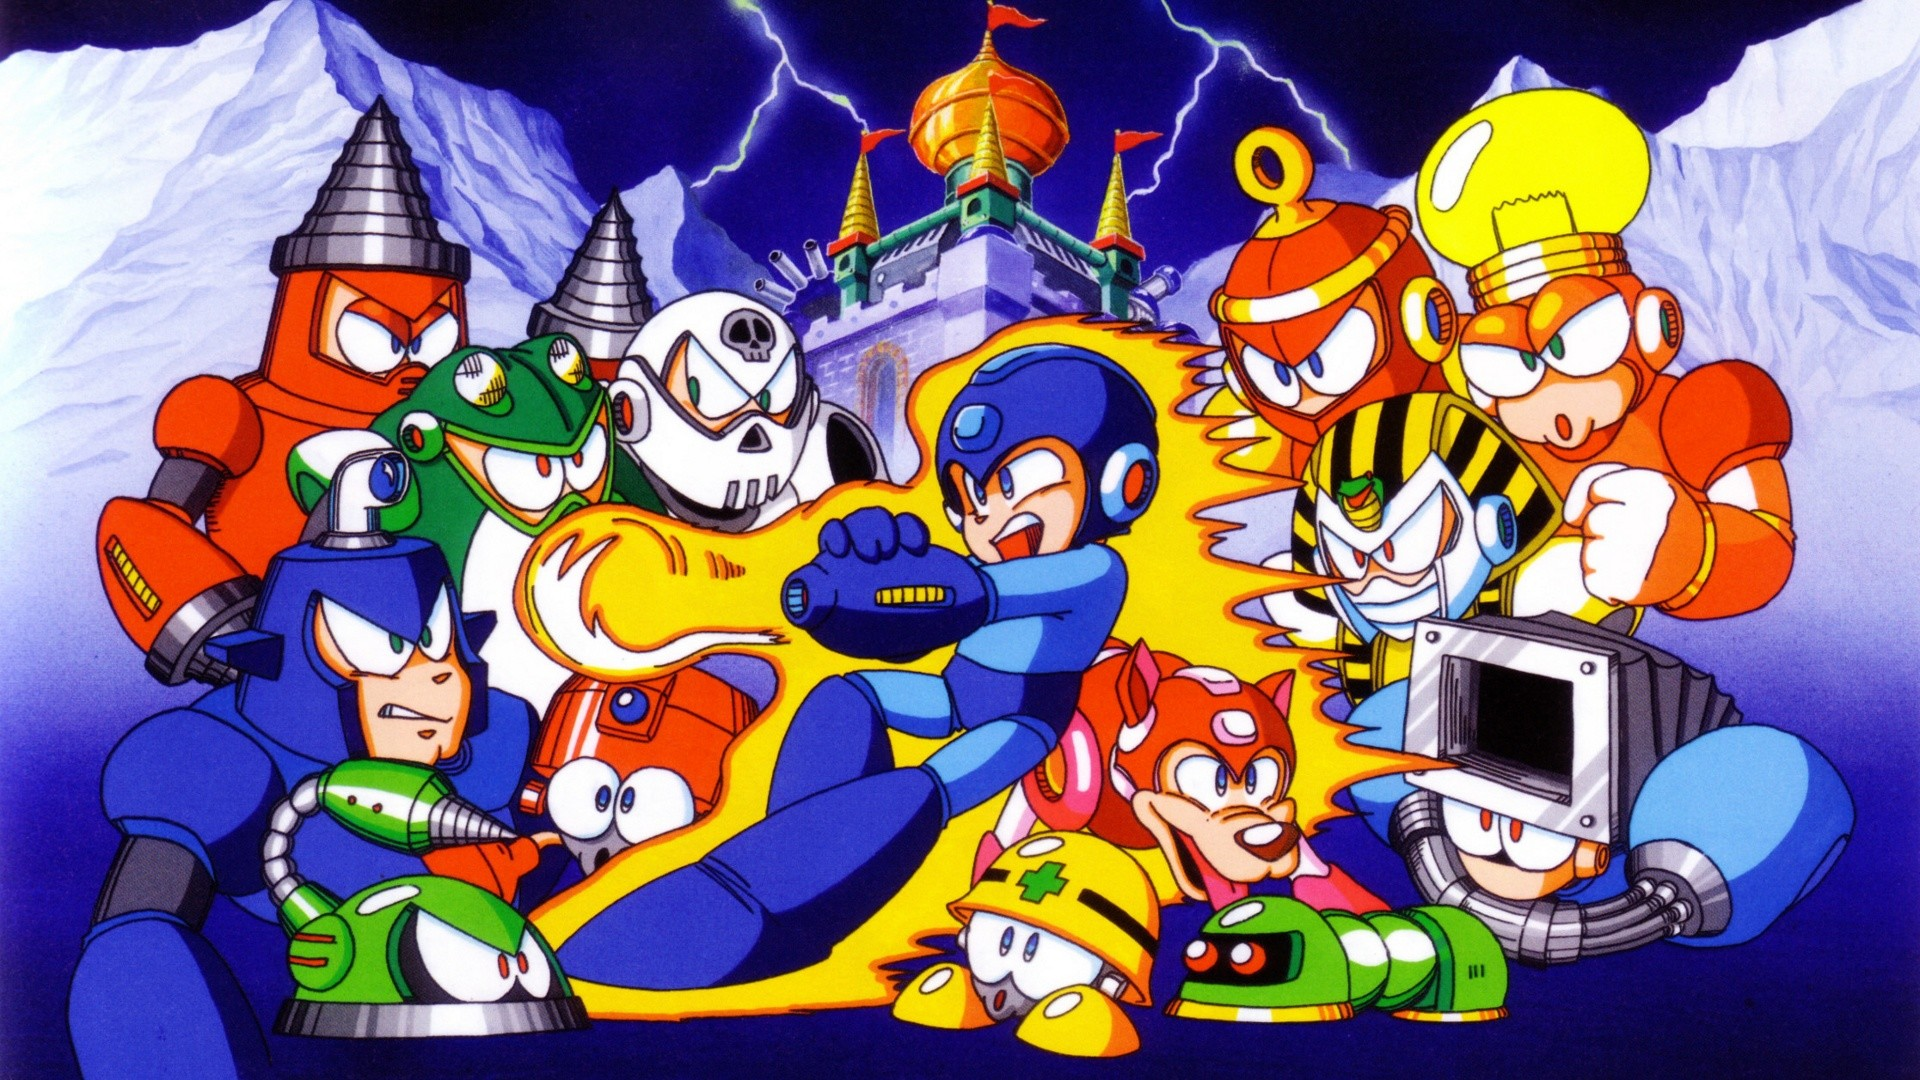 Res: 1920x1080, Mega Man 4 HD Wallpaper | Background Image |  | ID:587801 -  Wallpaper Abyss